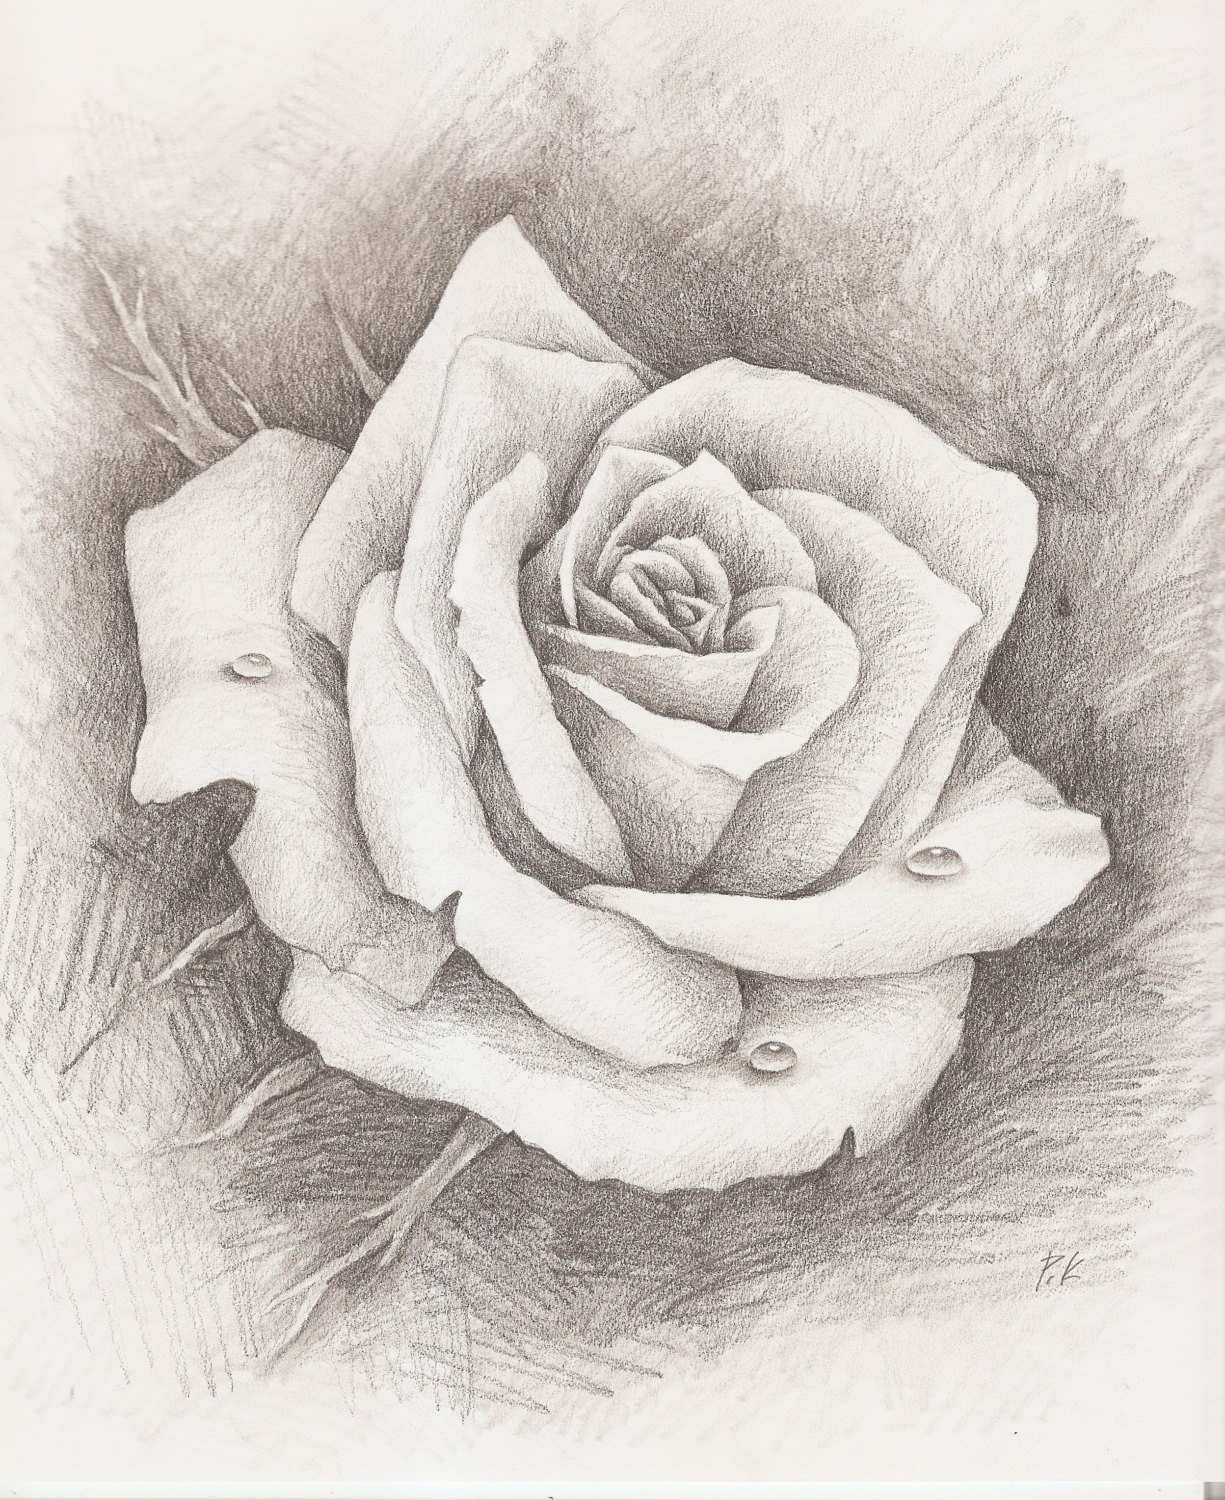 1225x1500 Pencil Sketches Of Rose With Image Pencil Drawings Pencil Drawing